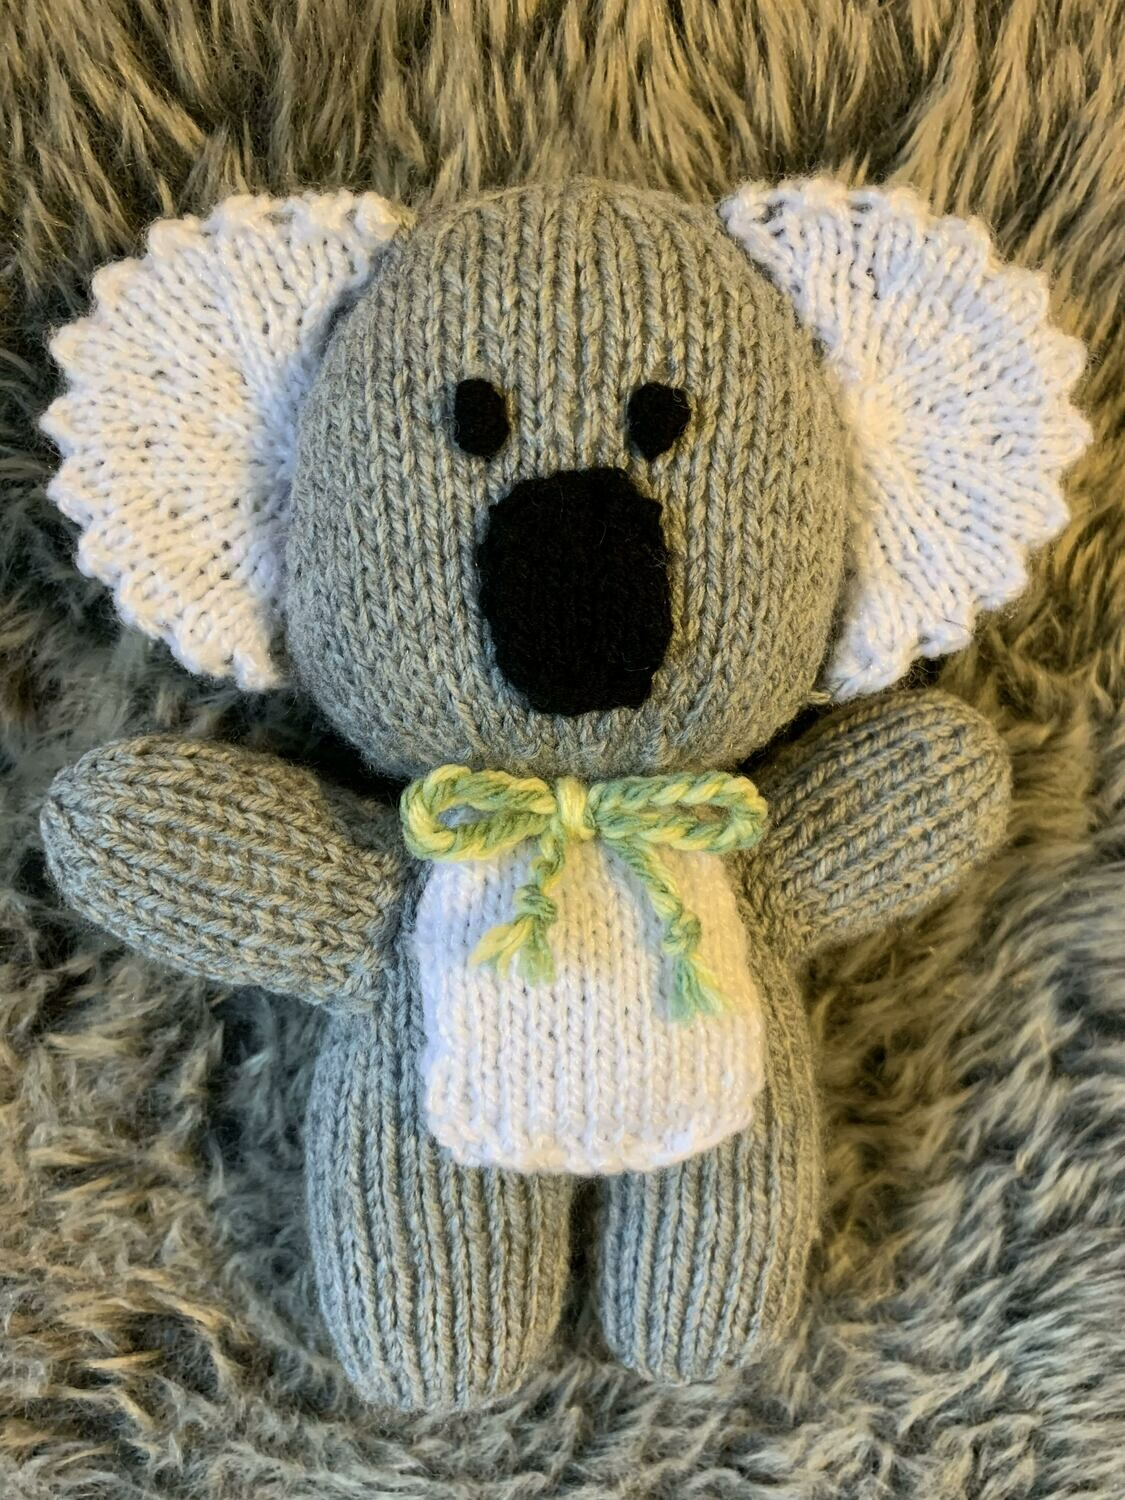 Knitted Koala Toy